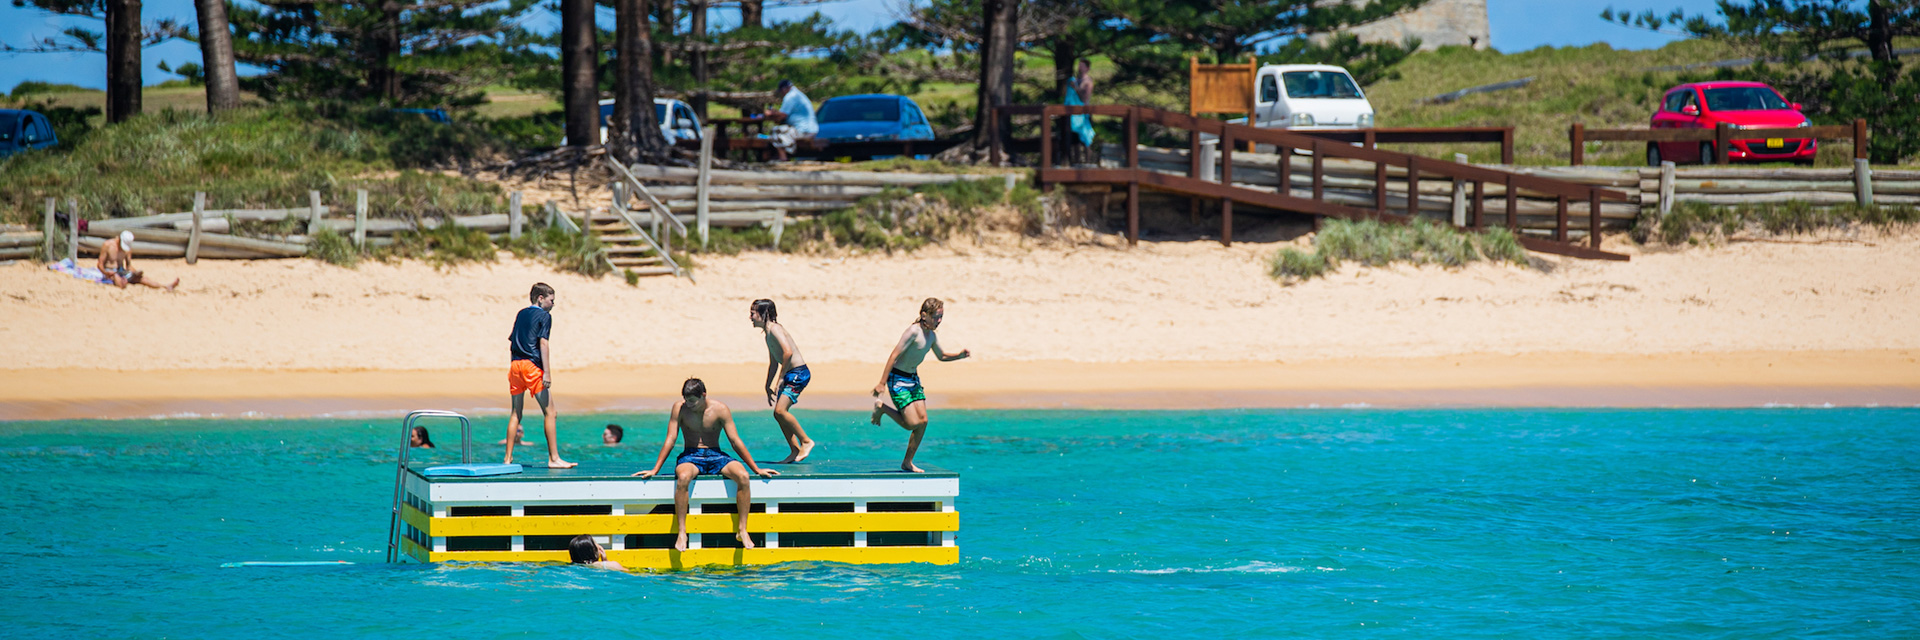 Four boys play on colourful pontoon in calm, clear ocean. Golden beach leads to pine trees and cars parked in background